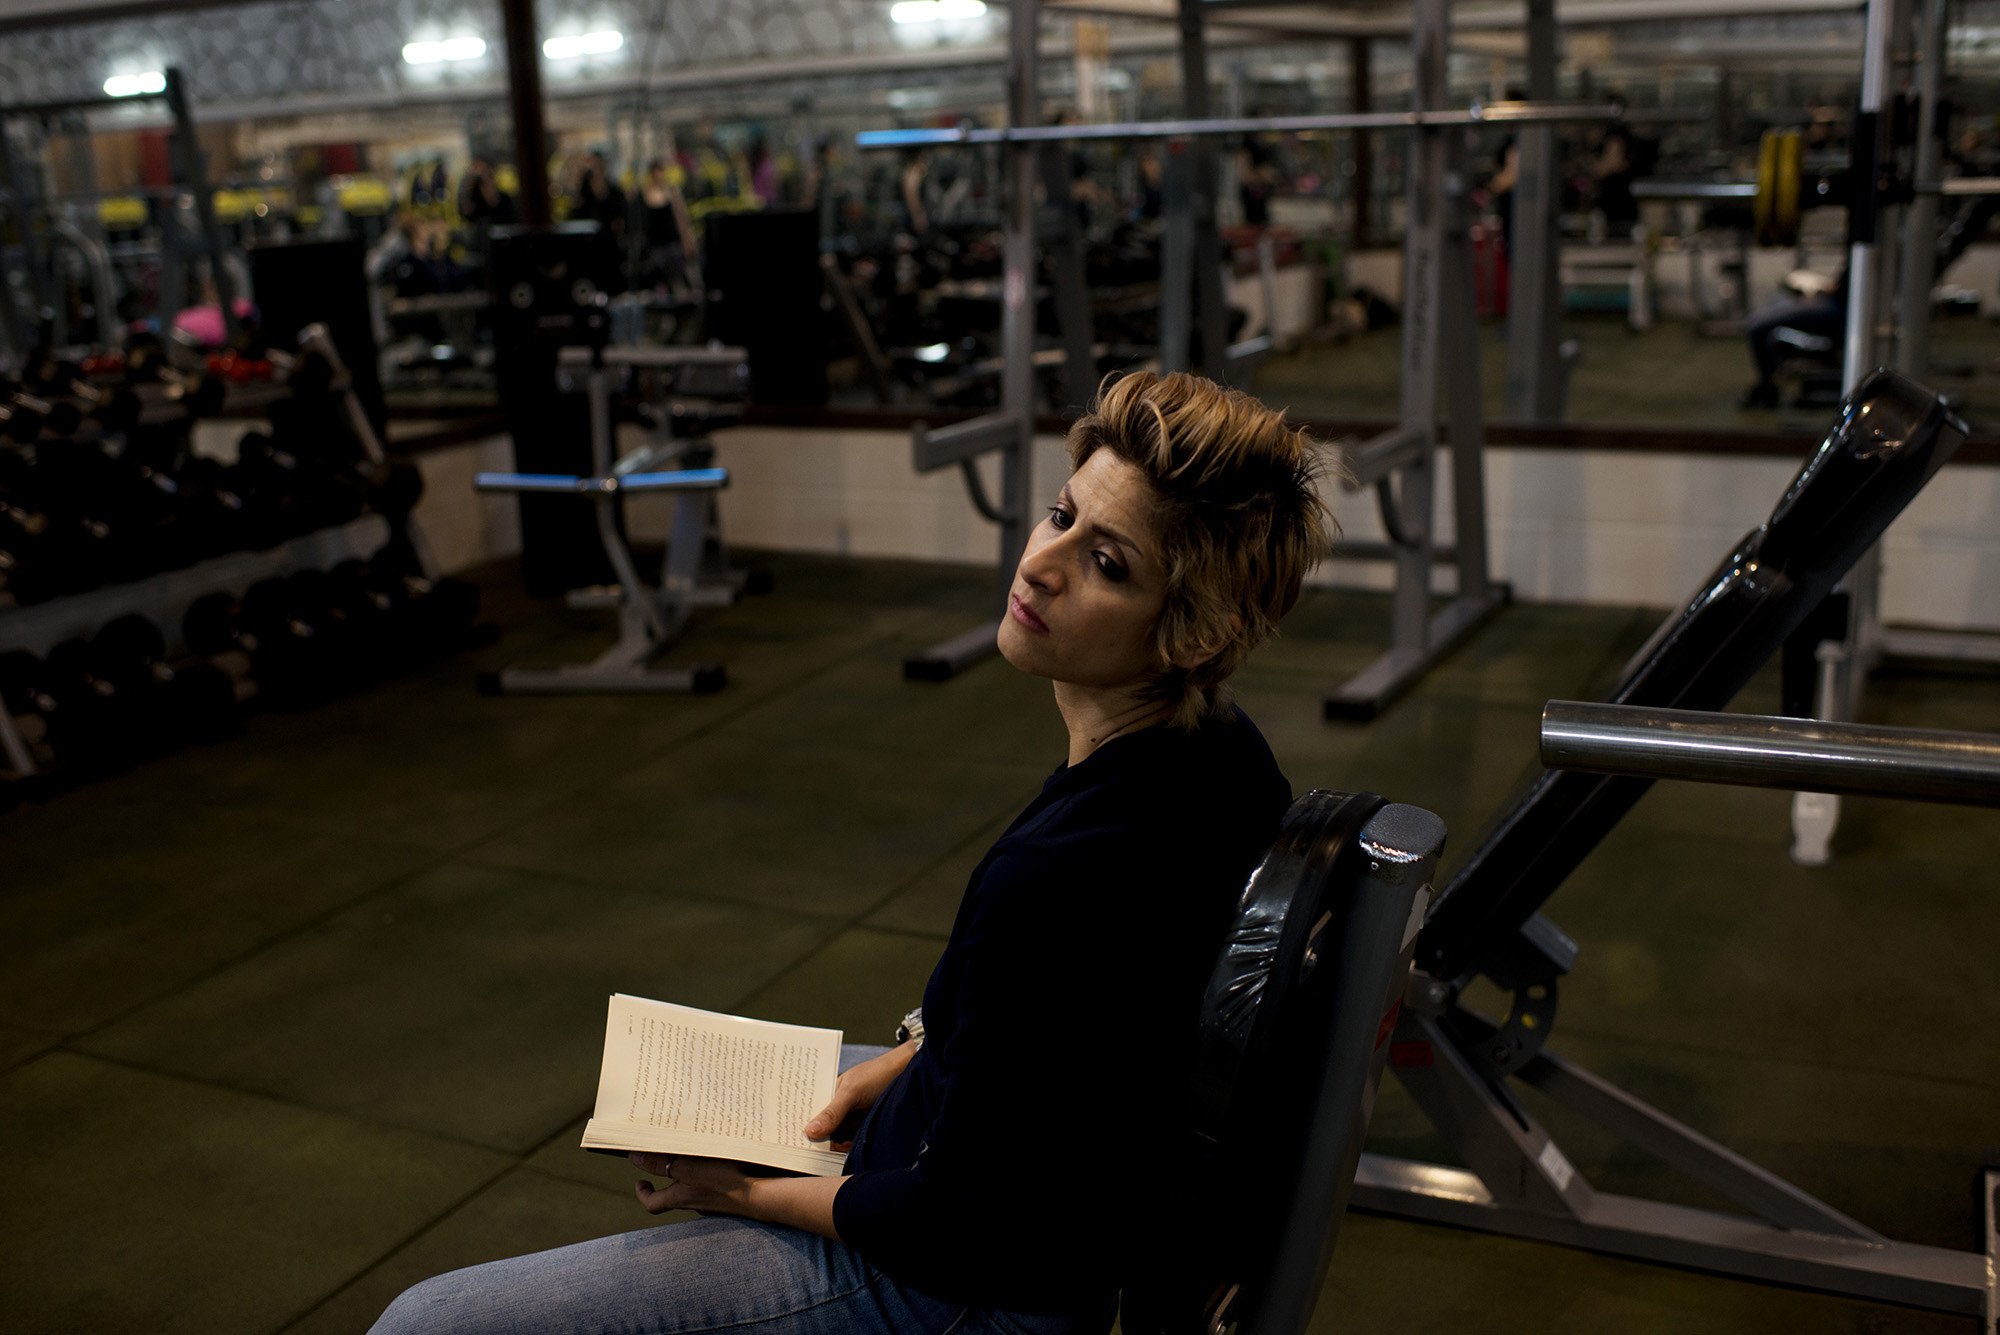 A woman with a short hair cut reading a book while sitting in a gym